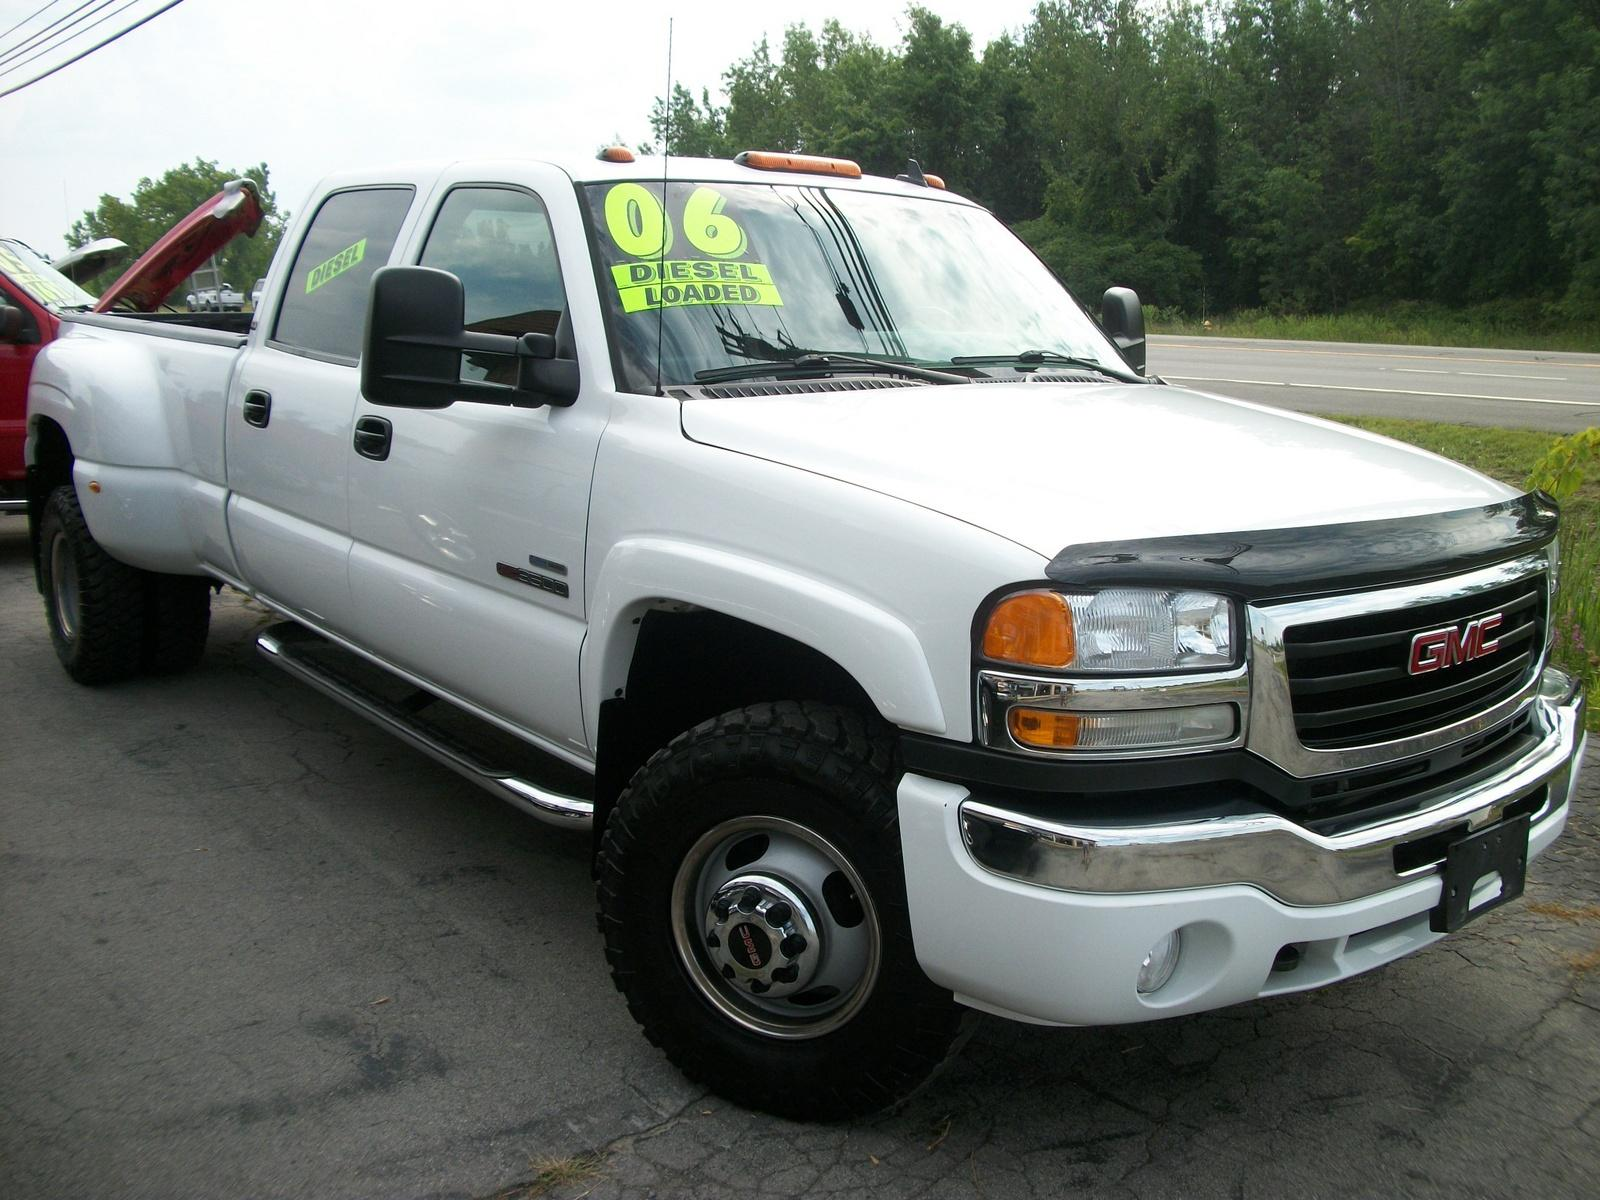 2001 gmc sierra 3500 information and photos zombiedrive. Black Bedroom Furniture Sets. Home Design Ideas